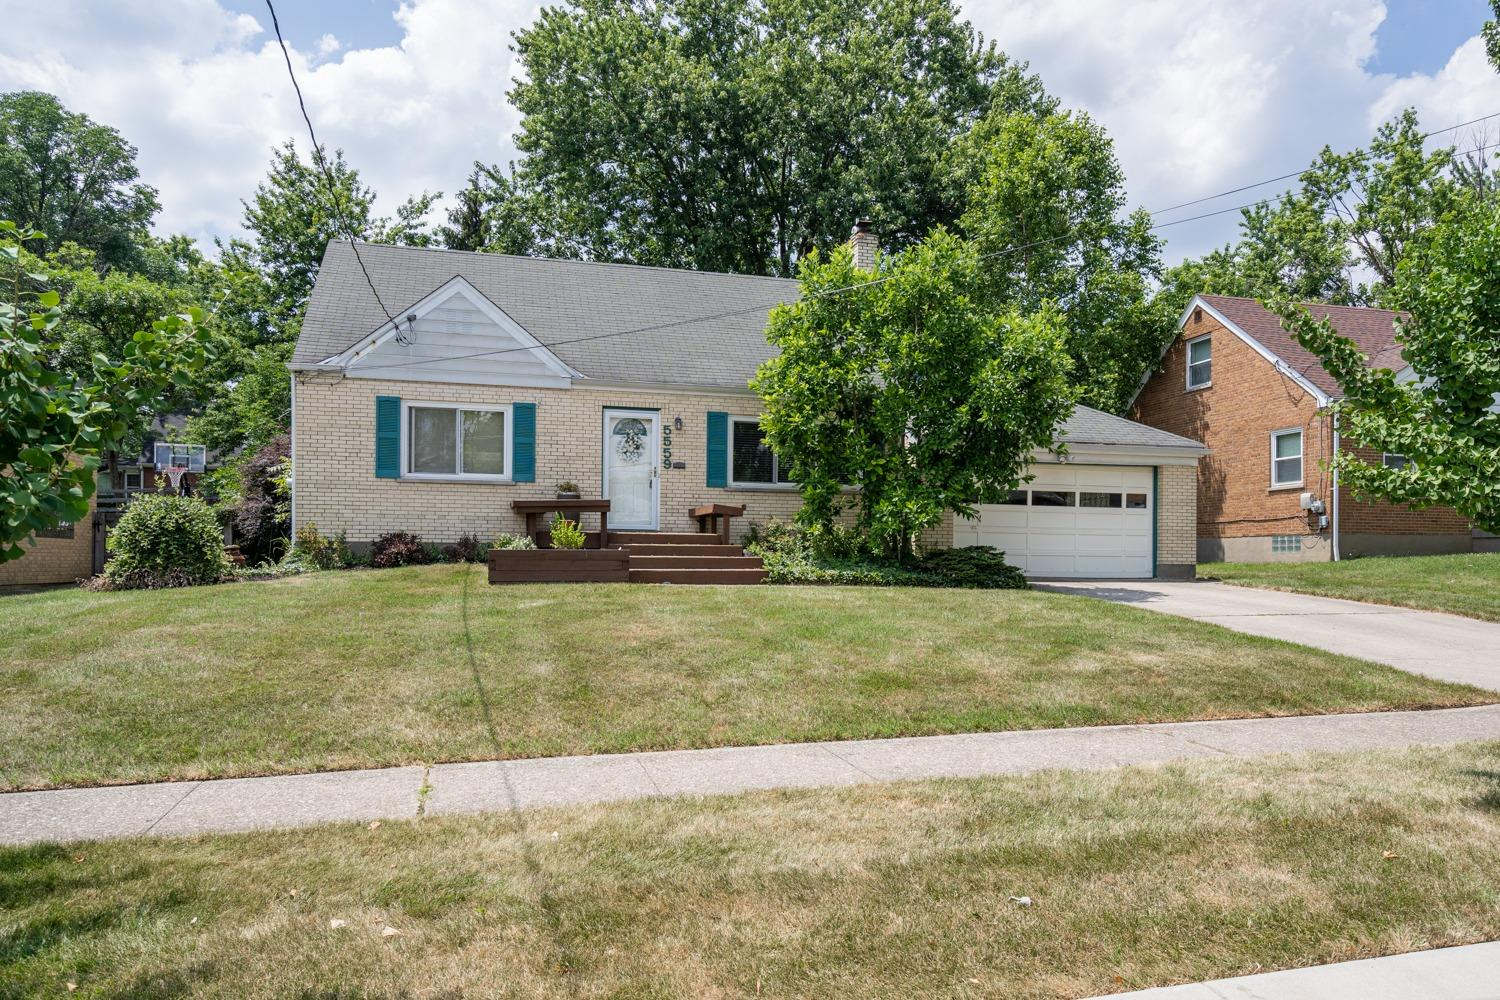 Photo 1 for 5559 Sunnywoods Ln Monfort Hts., OH 45239